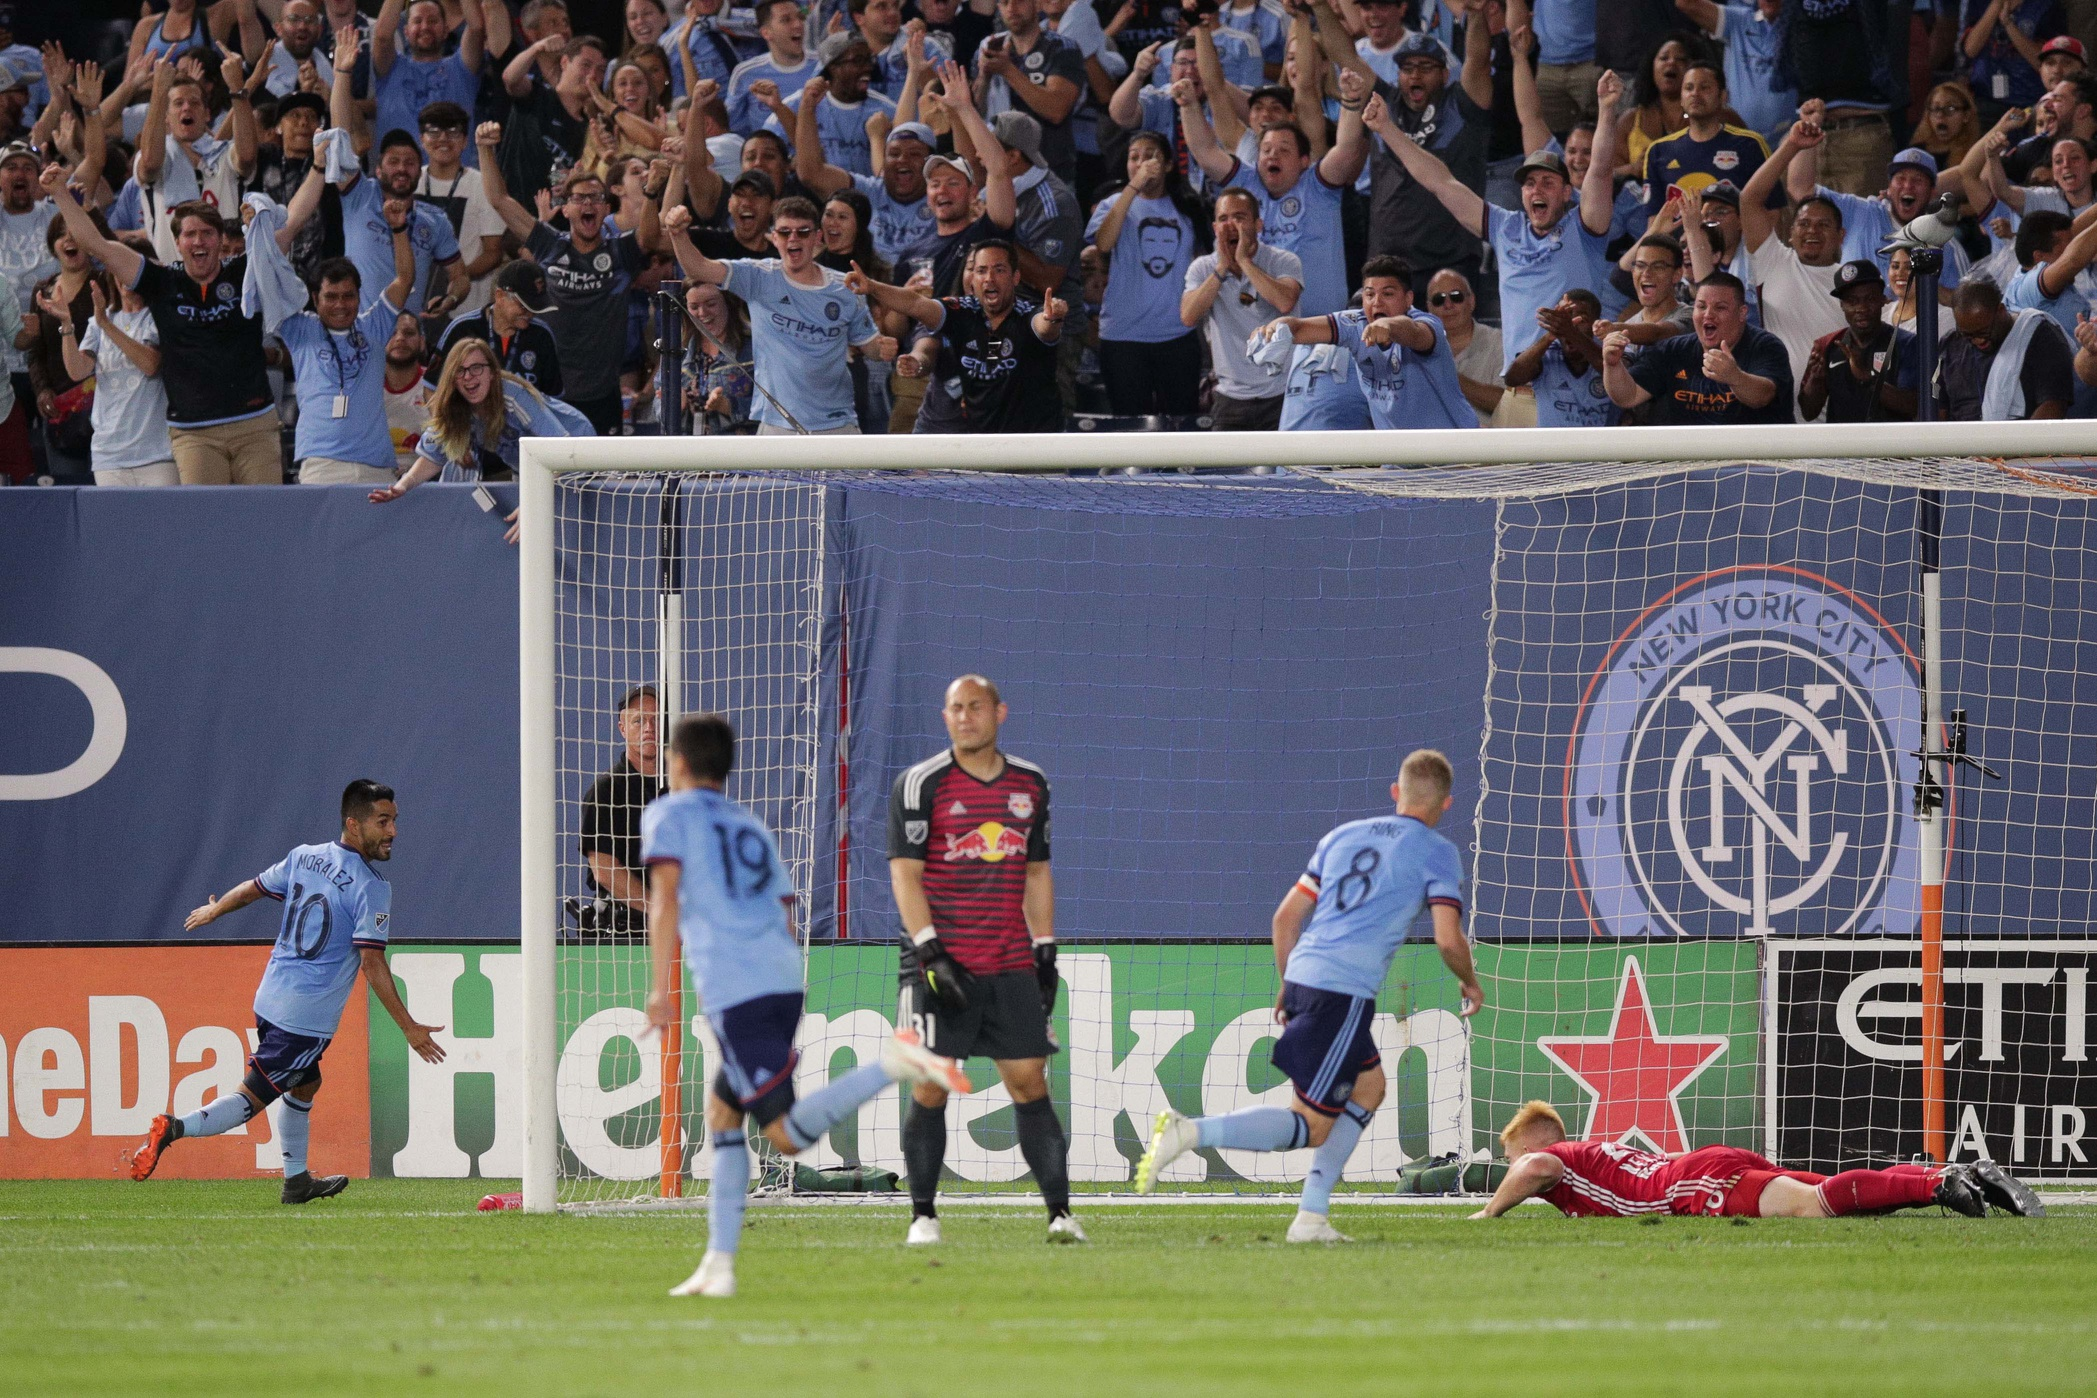 Jul 8, 2018; New York, NY, USA; New York City FC midfielder Maximiliano Moralez (10) celebrates his goal with midfielder Alexander Ring (8) in front of New York Red Bulls forward Bradley Wright-Phillips (99) and defender Tim Parker (26) during the second half at Yankee Stadium. Mandatory Credit: Vincent Carchietta-USA TODAY Sports